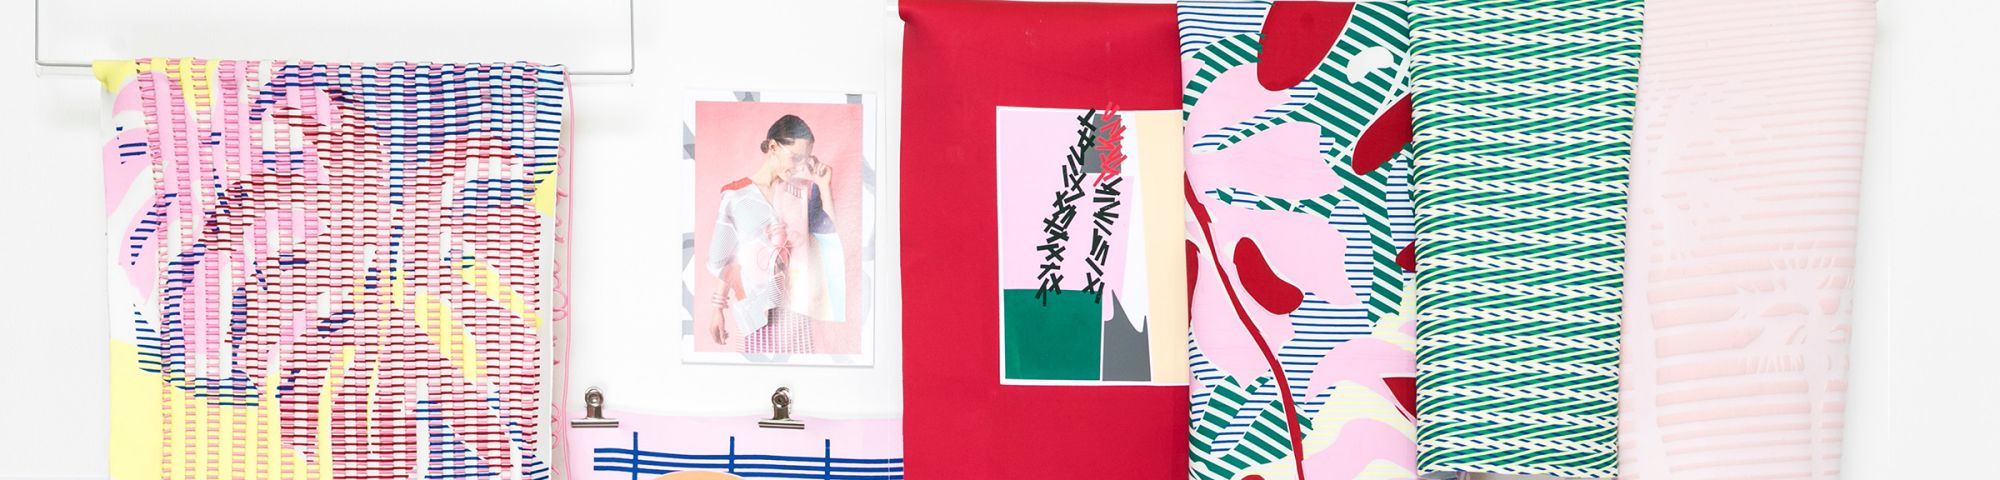 Selection of textile designs in reds, pinks and greens.